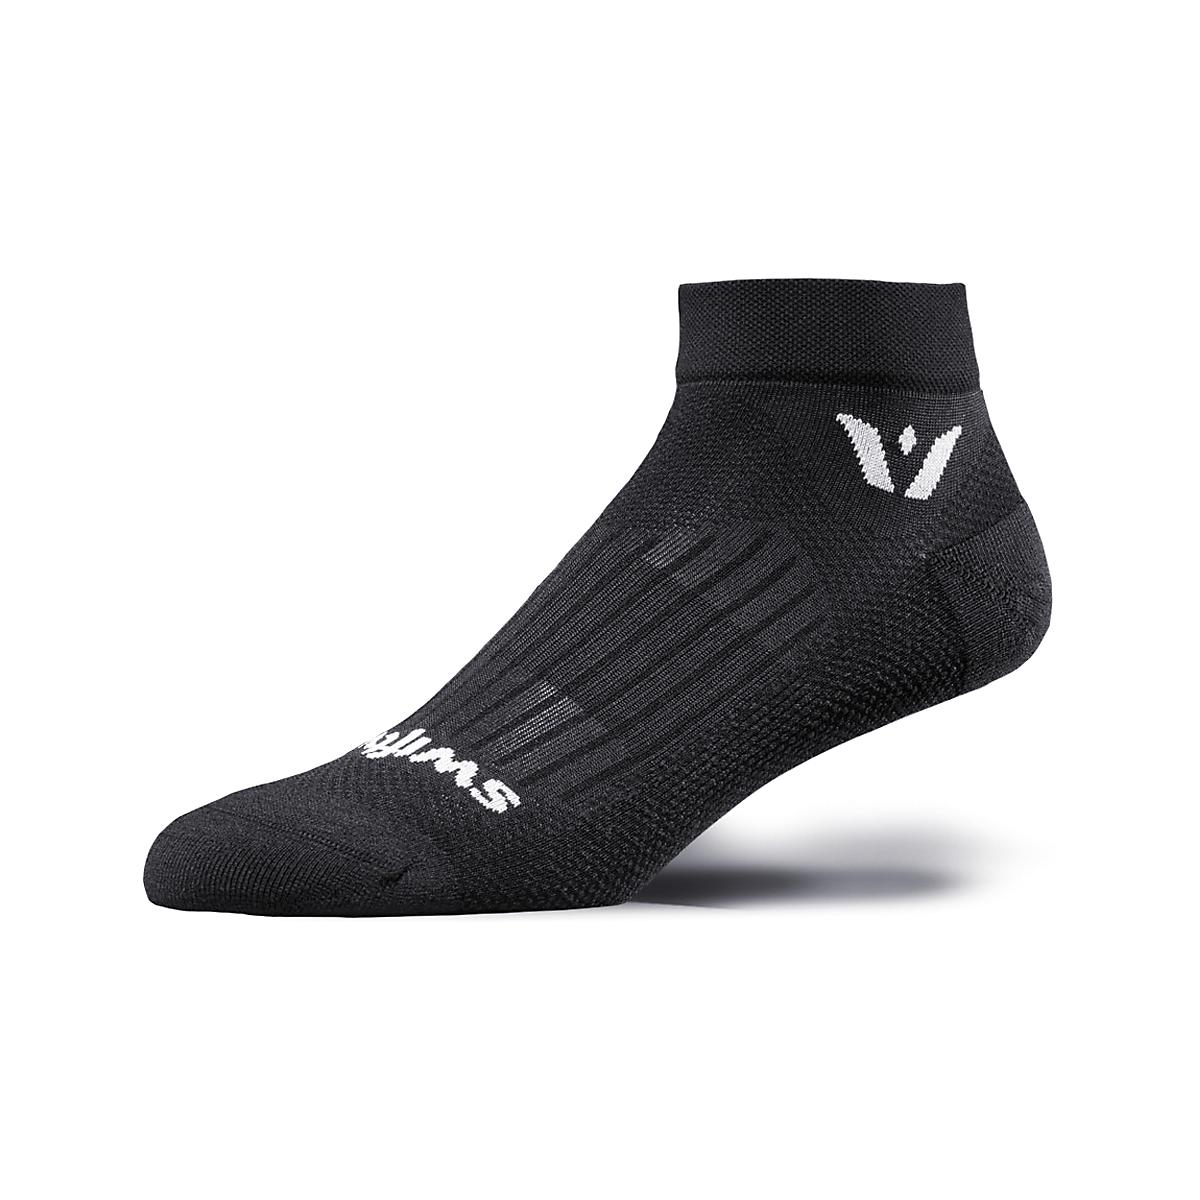 Swiftwick�One Aspire Ankle